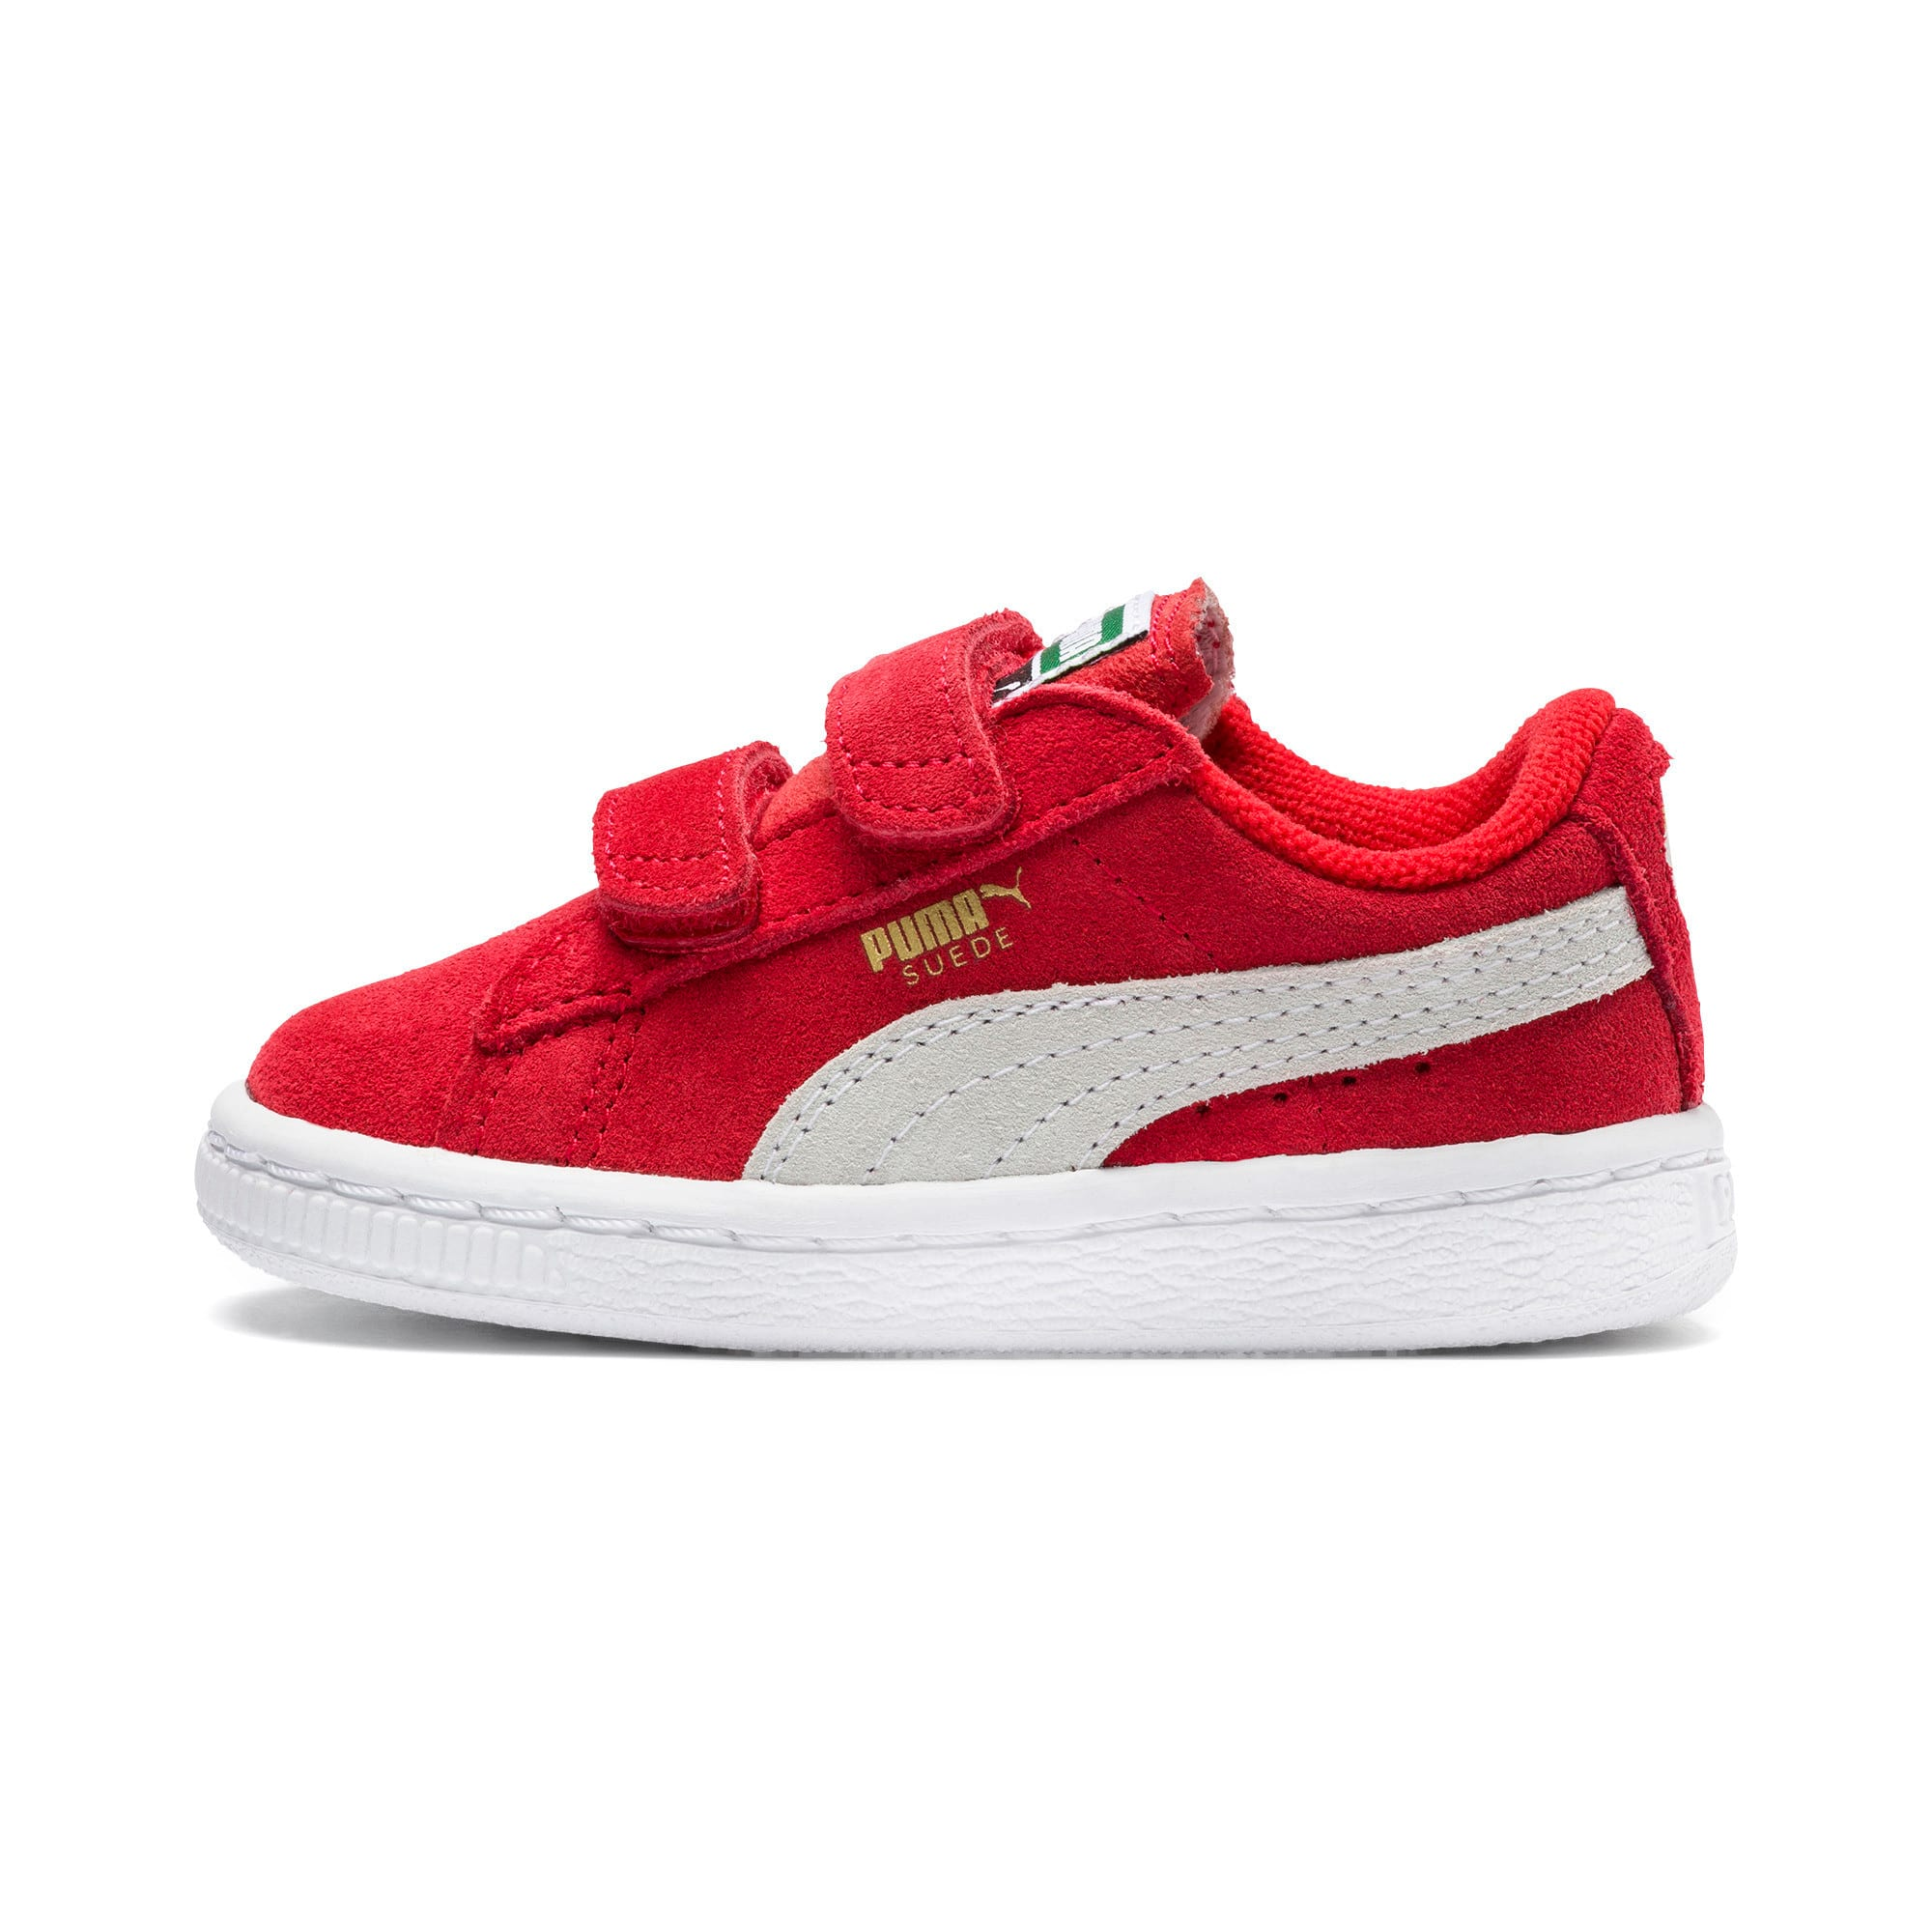 Suede Two-strap Babies' Trainers, Rood/Wit, Maat 25   PUMA